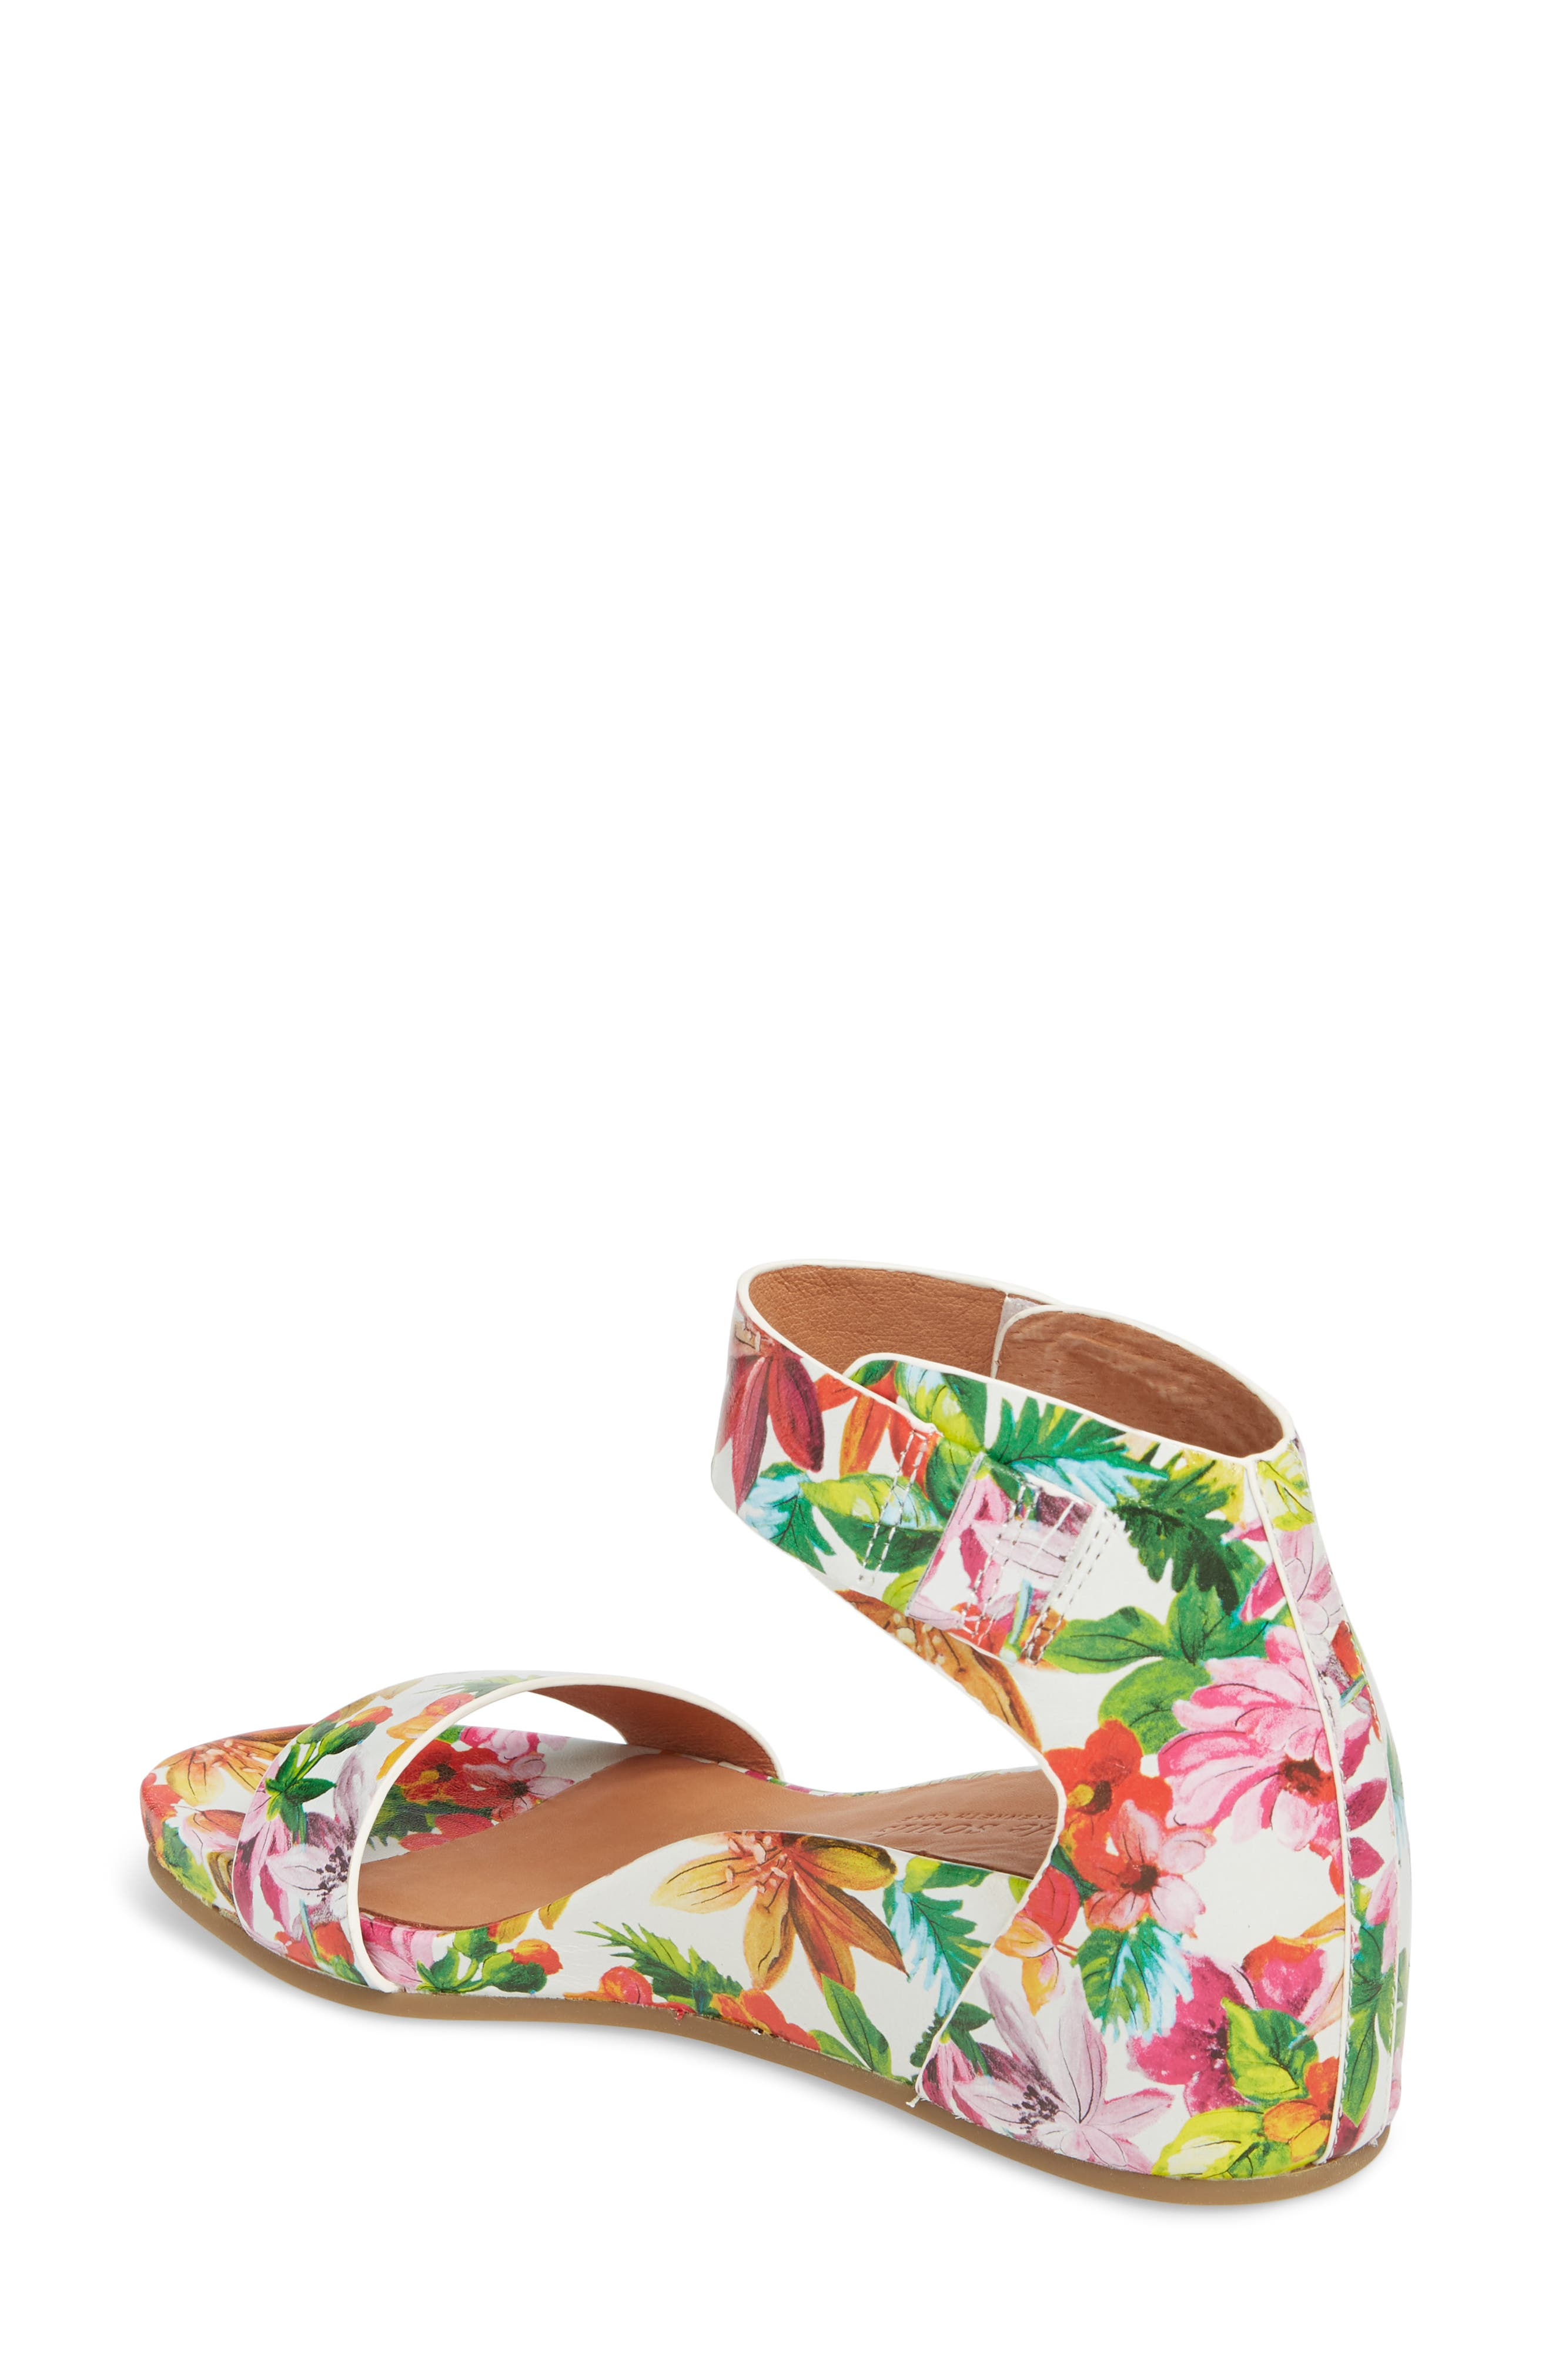 Gentle Souls by Kenneth Cole Gianna Wedge Sandal,                             Alternate thumbnail 2, color,                             PALM PRINTED LEATHER